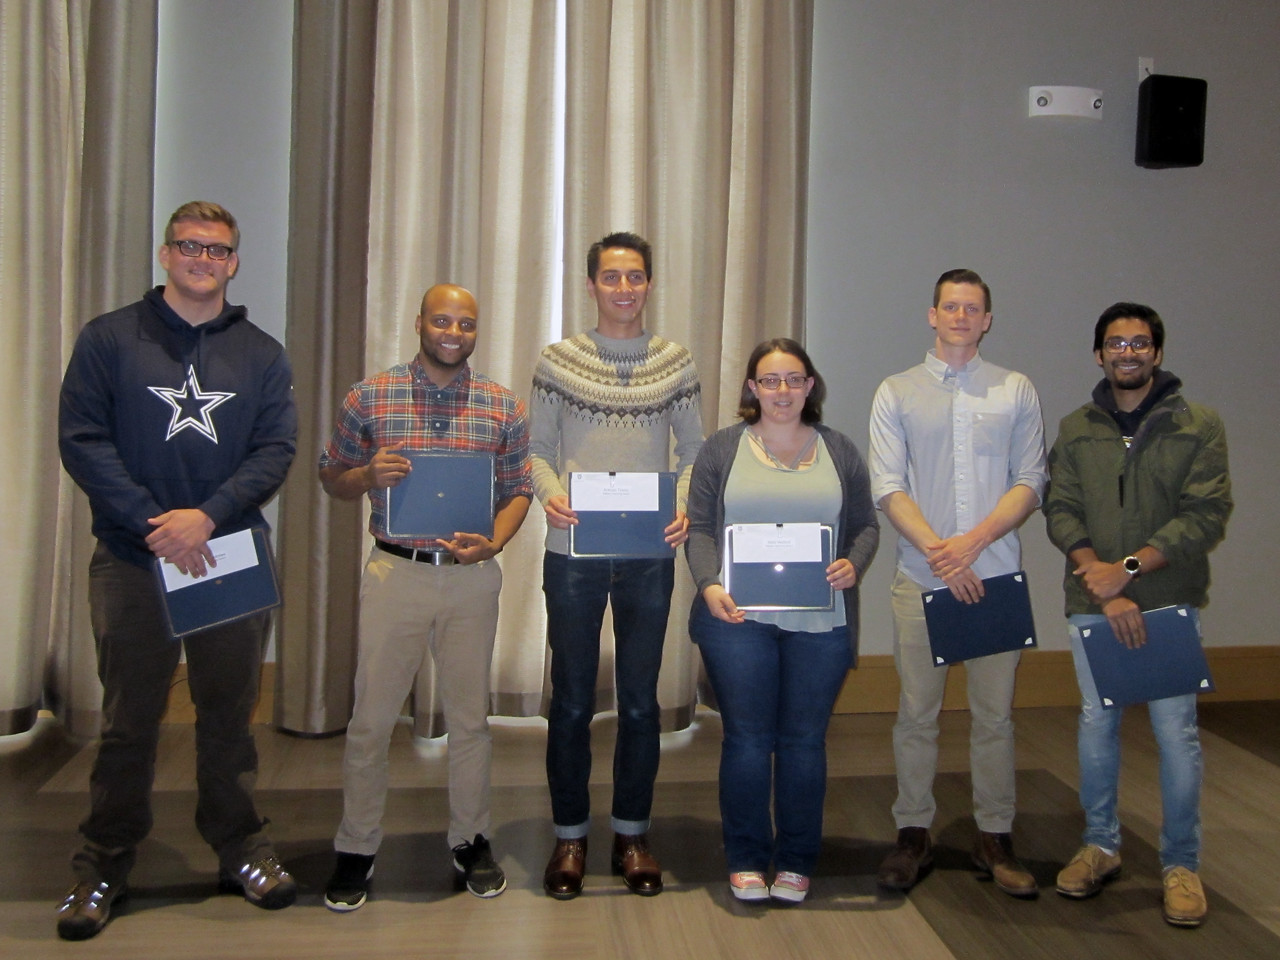 2016-2017 W.D. Walters Teaching Award Recipients:<br /> Jordan Andrews, Shukree Abdul-Rashed, Antonio Tinoco, Nikki Wolford, Dylan Parsons,  Sutirtha Chowdhury<br /> <br /> The W.D. Walters Teaching Award recognizes outstanding undergraduate teaching by graduate teaching assistants. This award memorializes the late Professor W.D. Walters and the standards of excellence and achievement exemplified by him. It also recognizes our appreciation for the commitment and achievements of the awardees and consists of a certificate and cash prize.